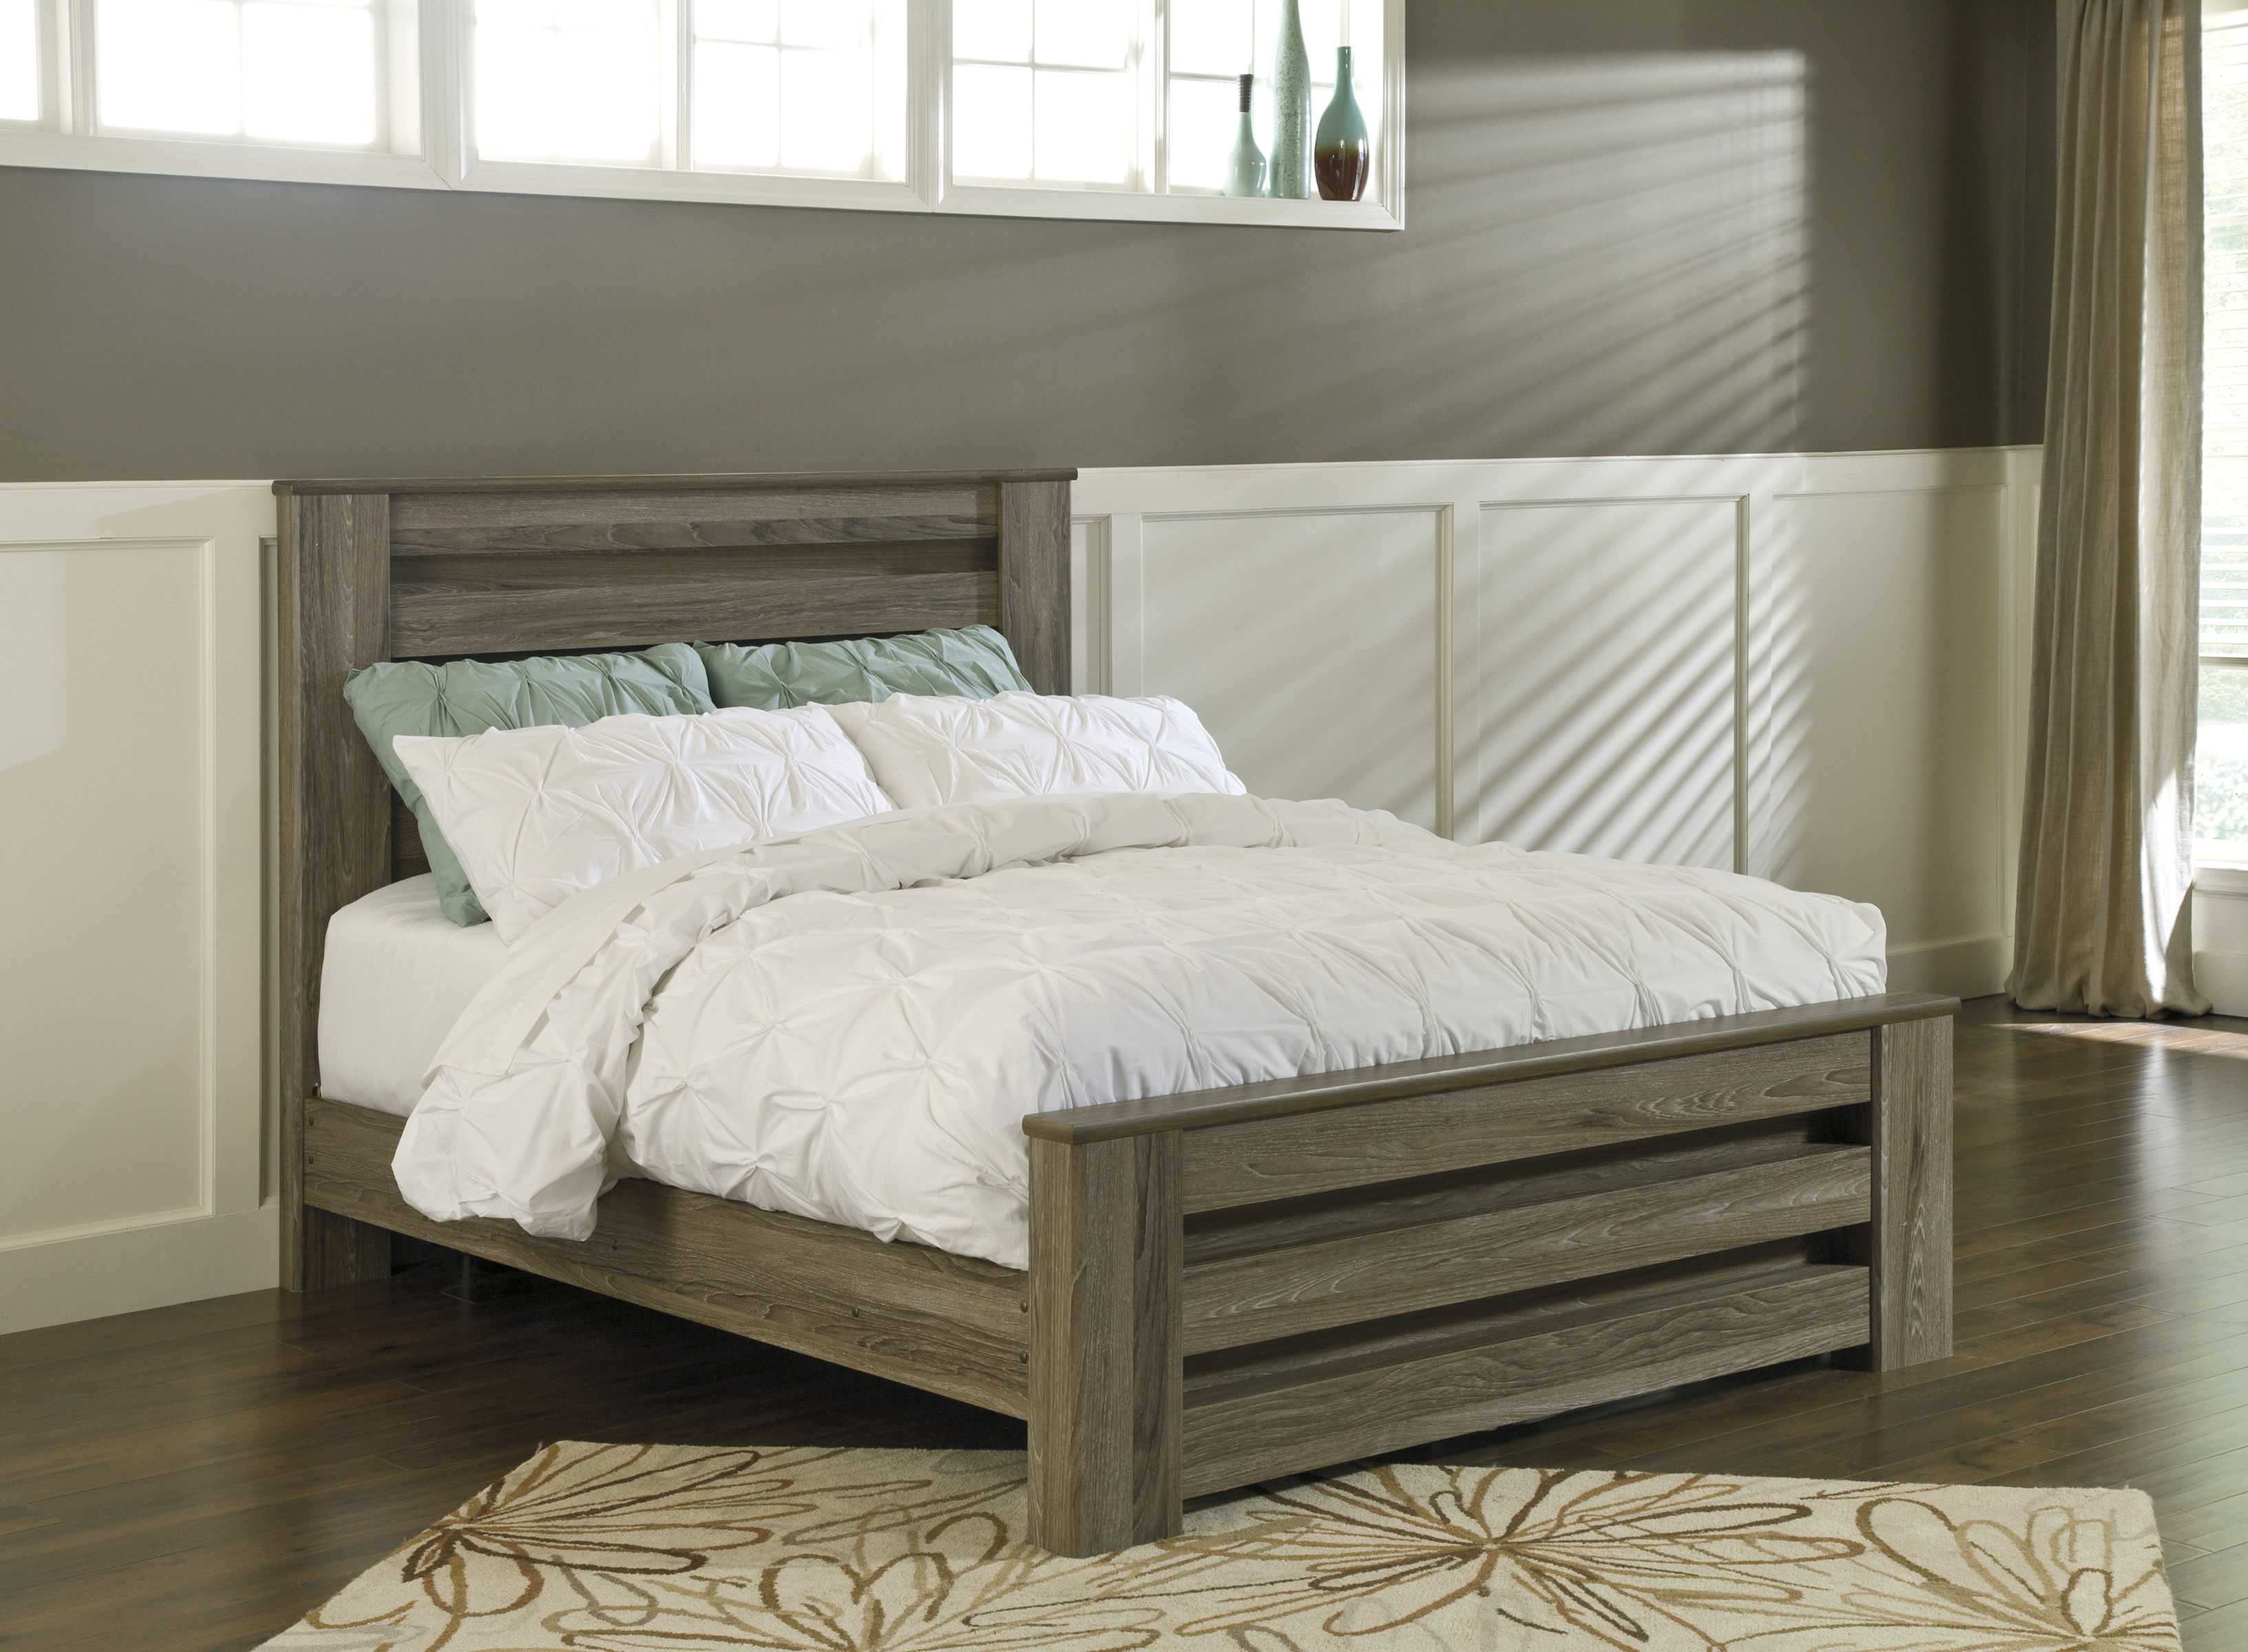 Ashley Furniture Zelen Queen Poster Bed To Enlarge